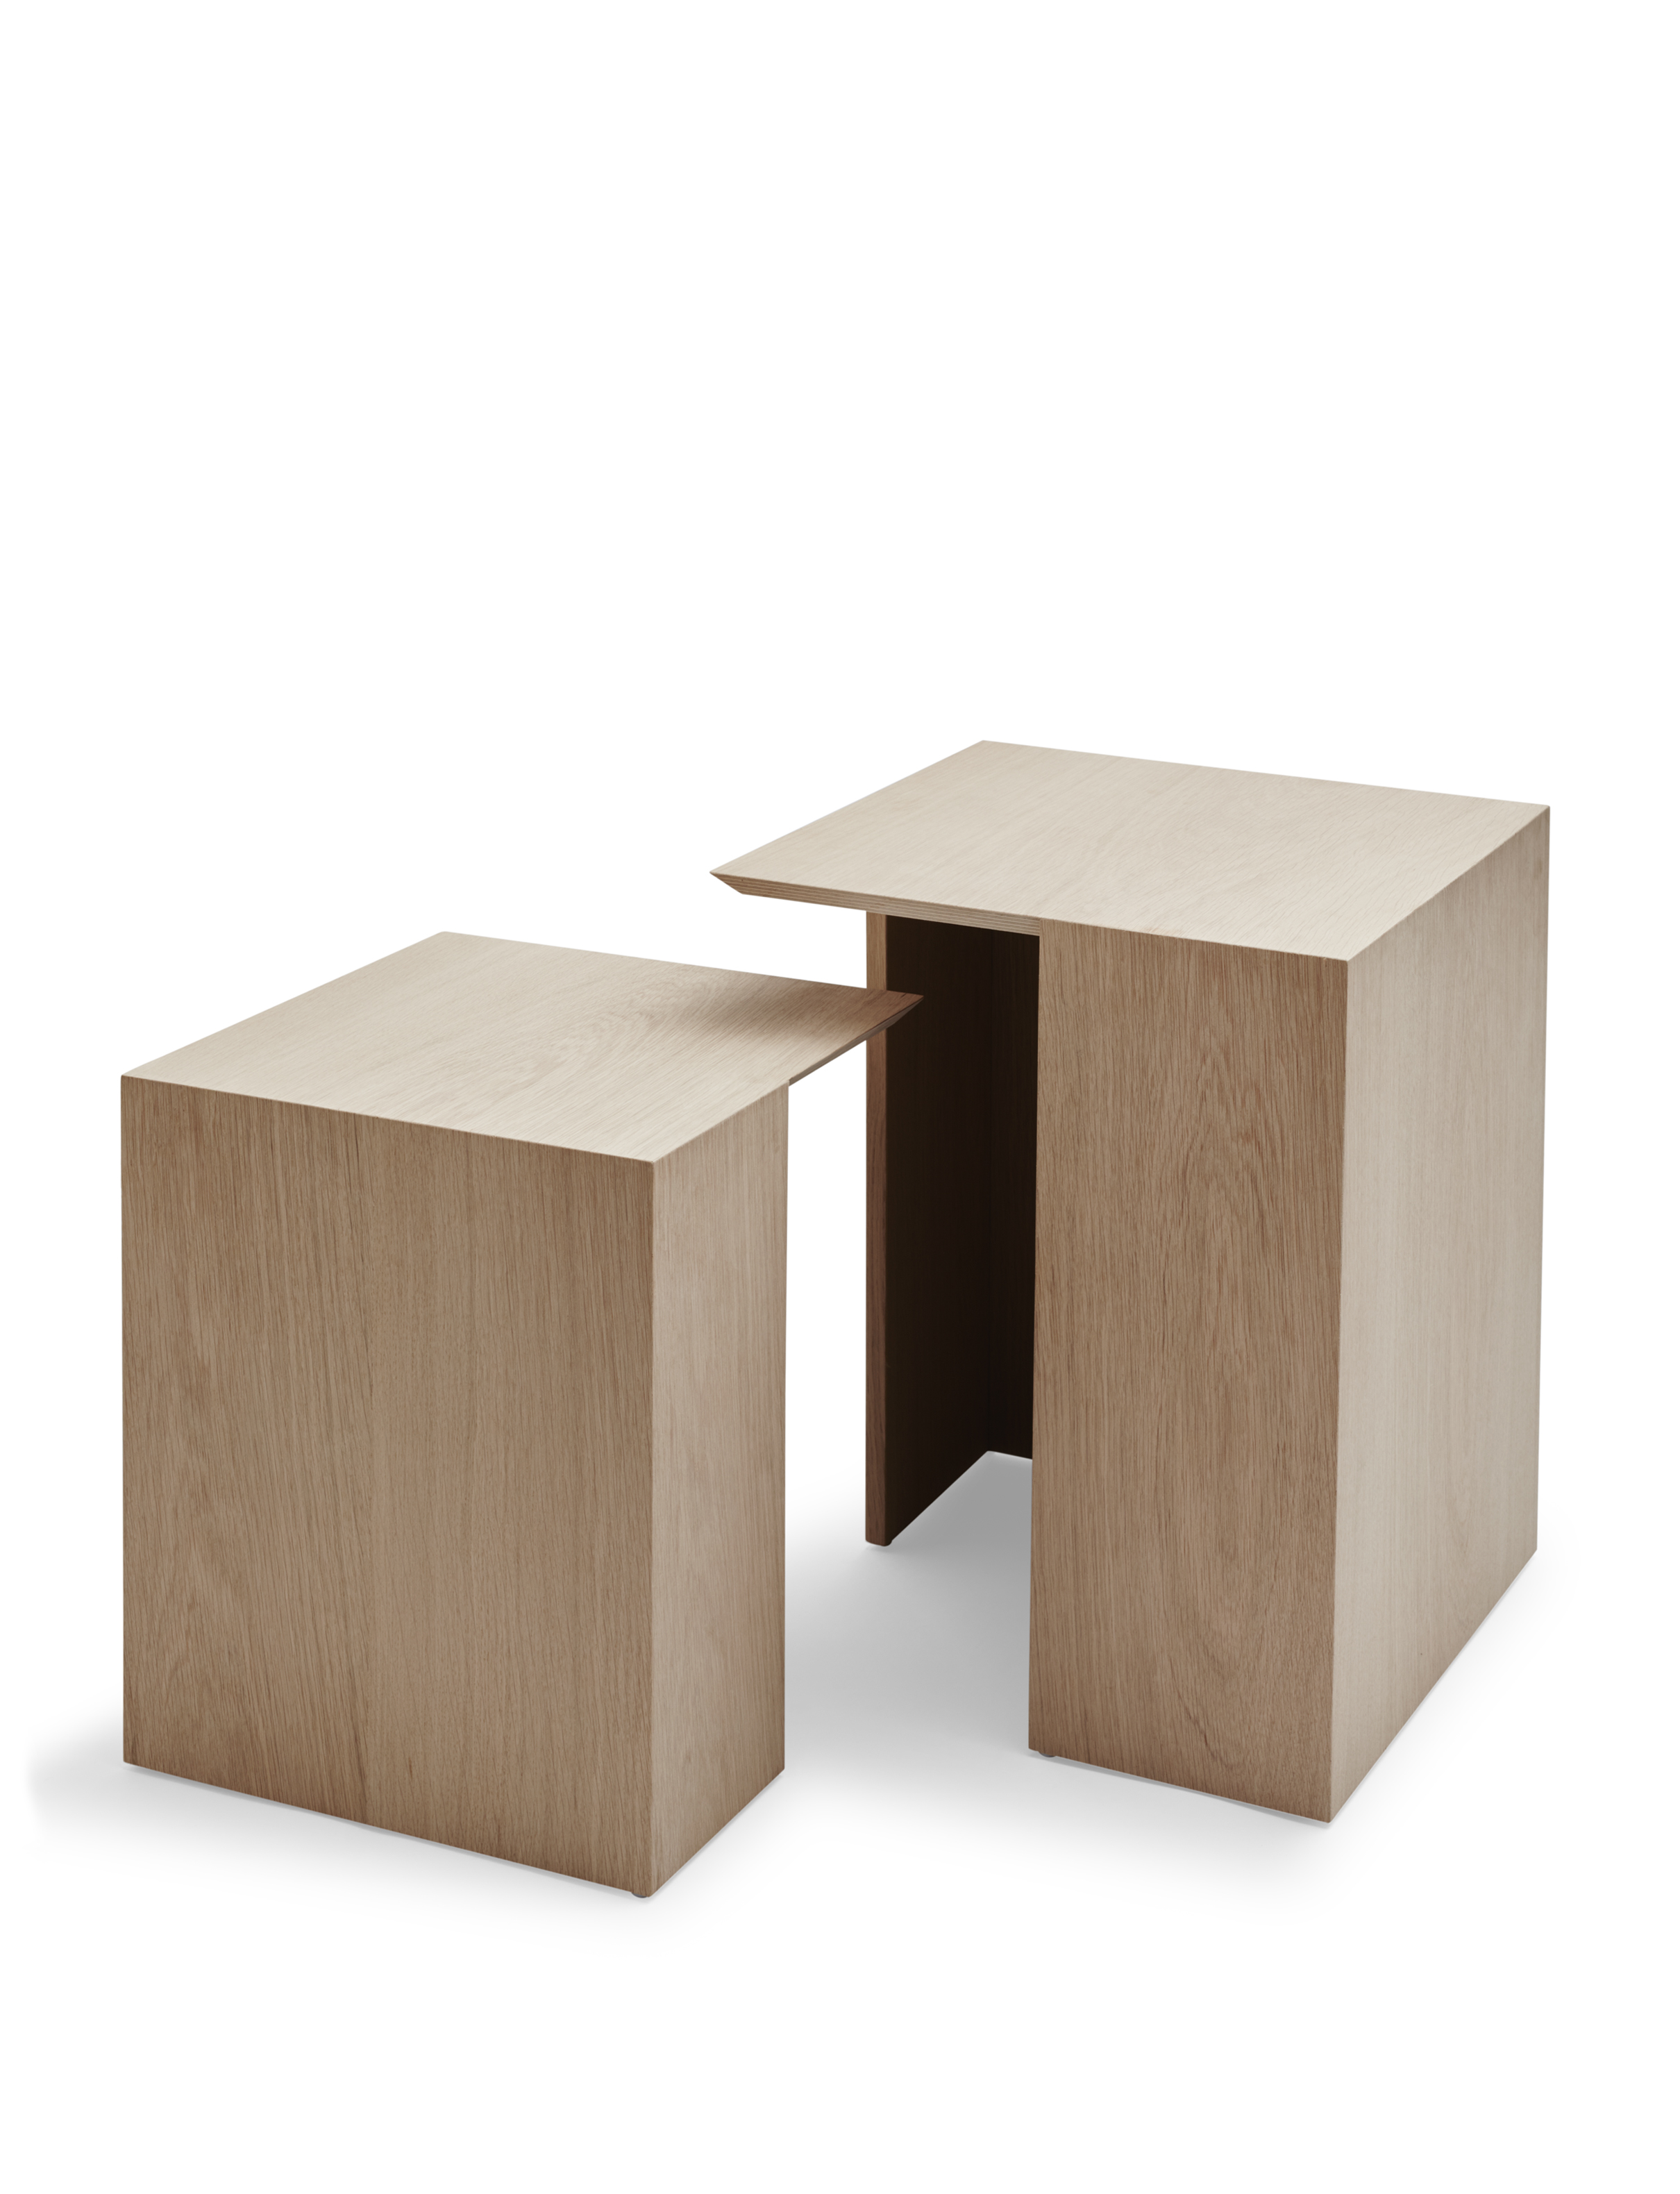 Building side table for Skagerak, by Bicolter